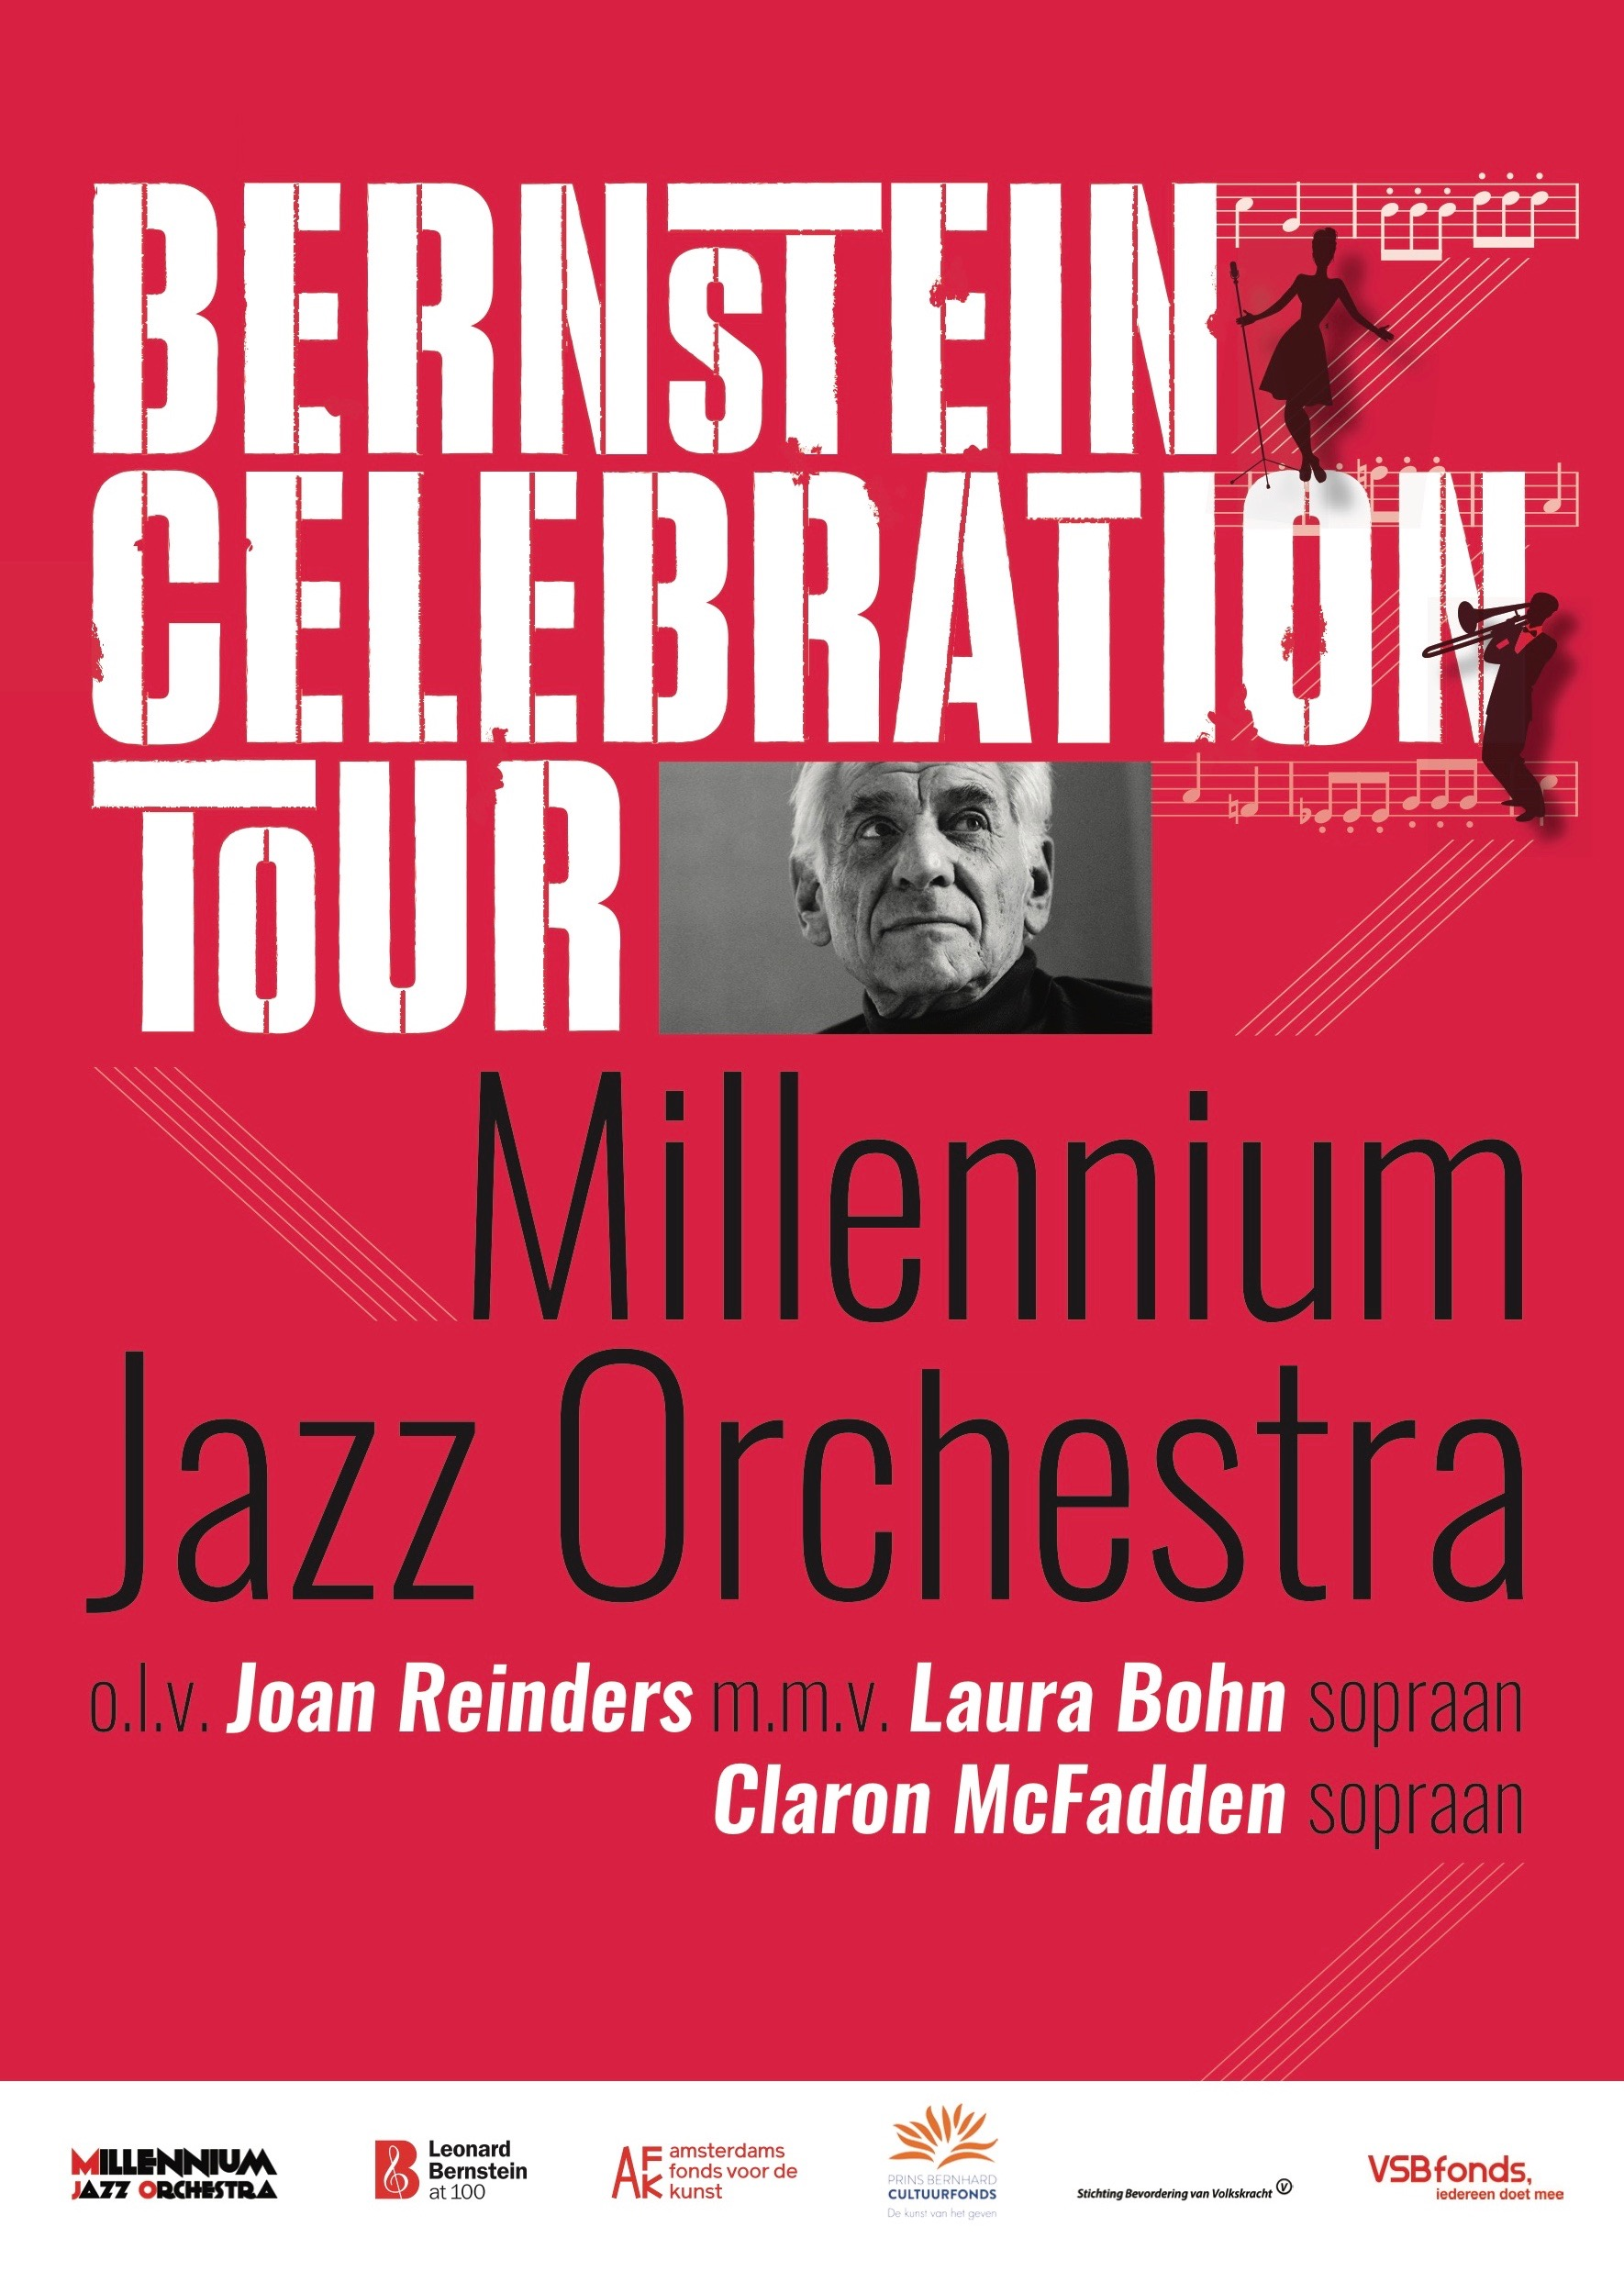 Bernstein Celebration Tour